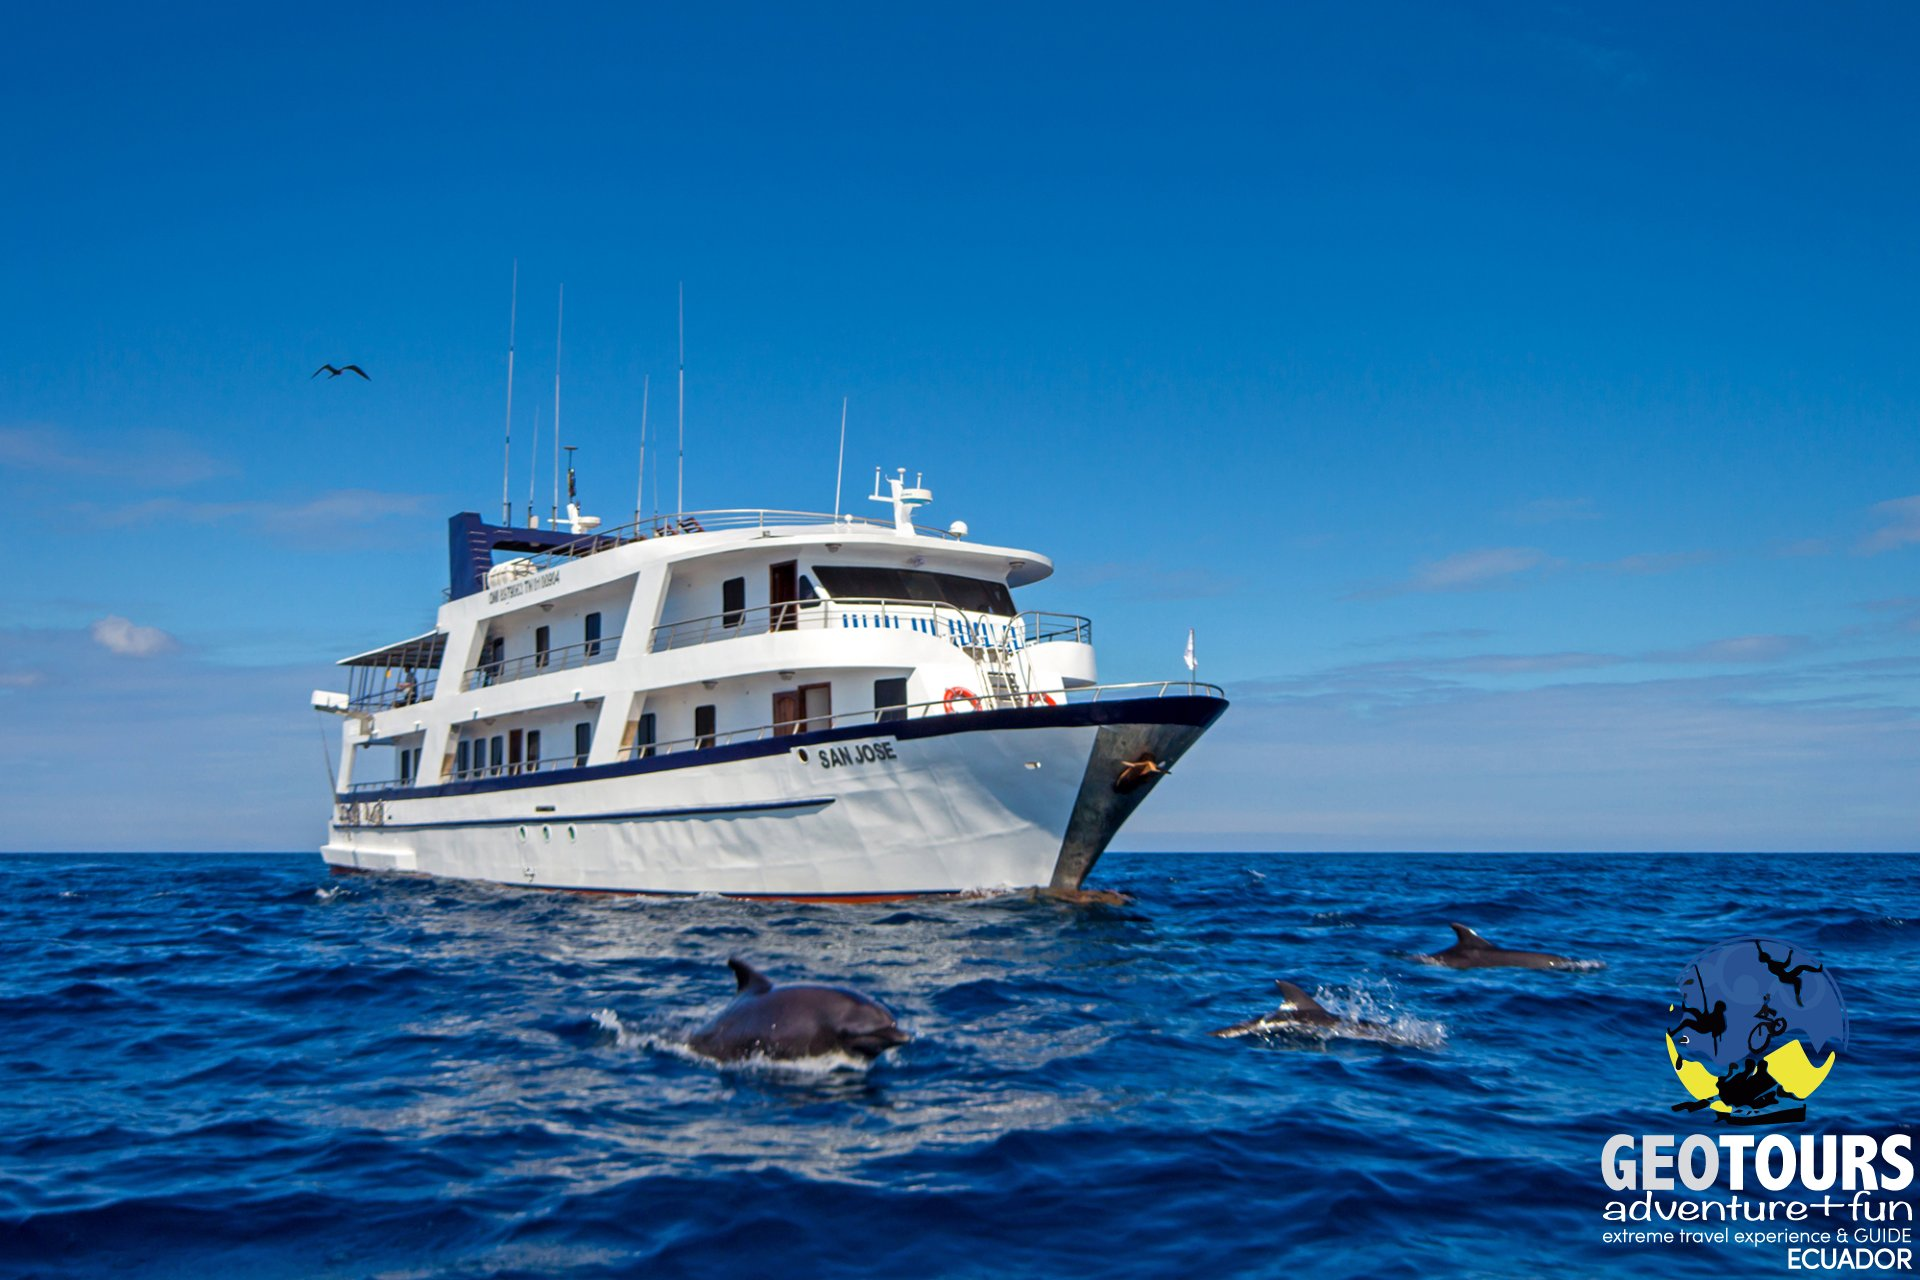 San Jose Yacht - Galapagos Islands